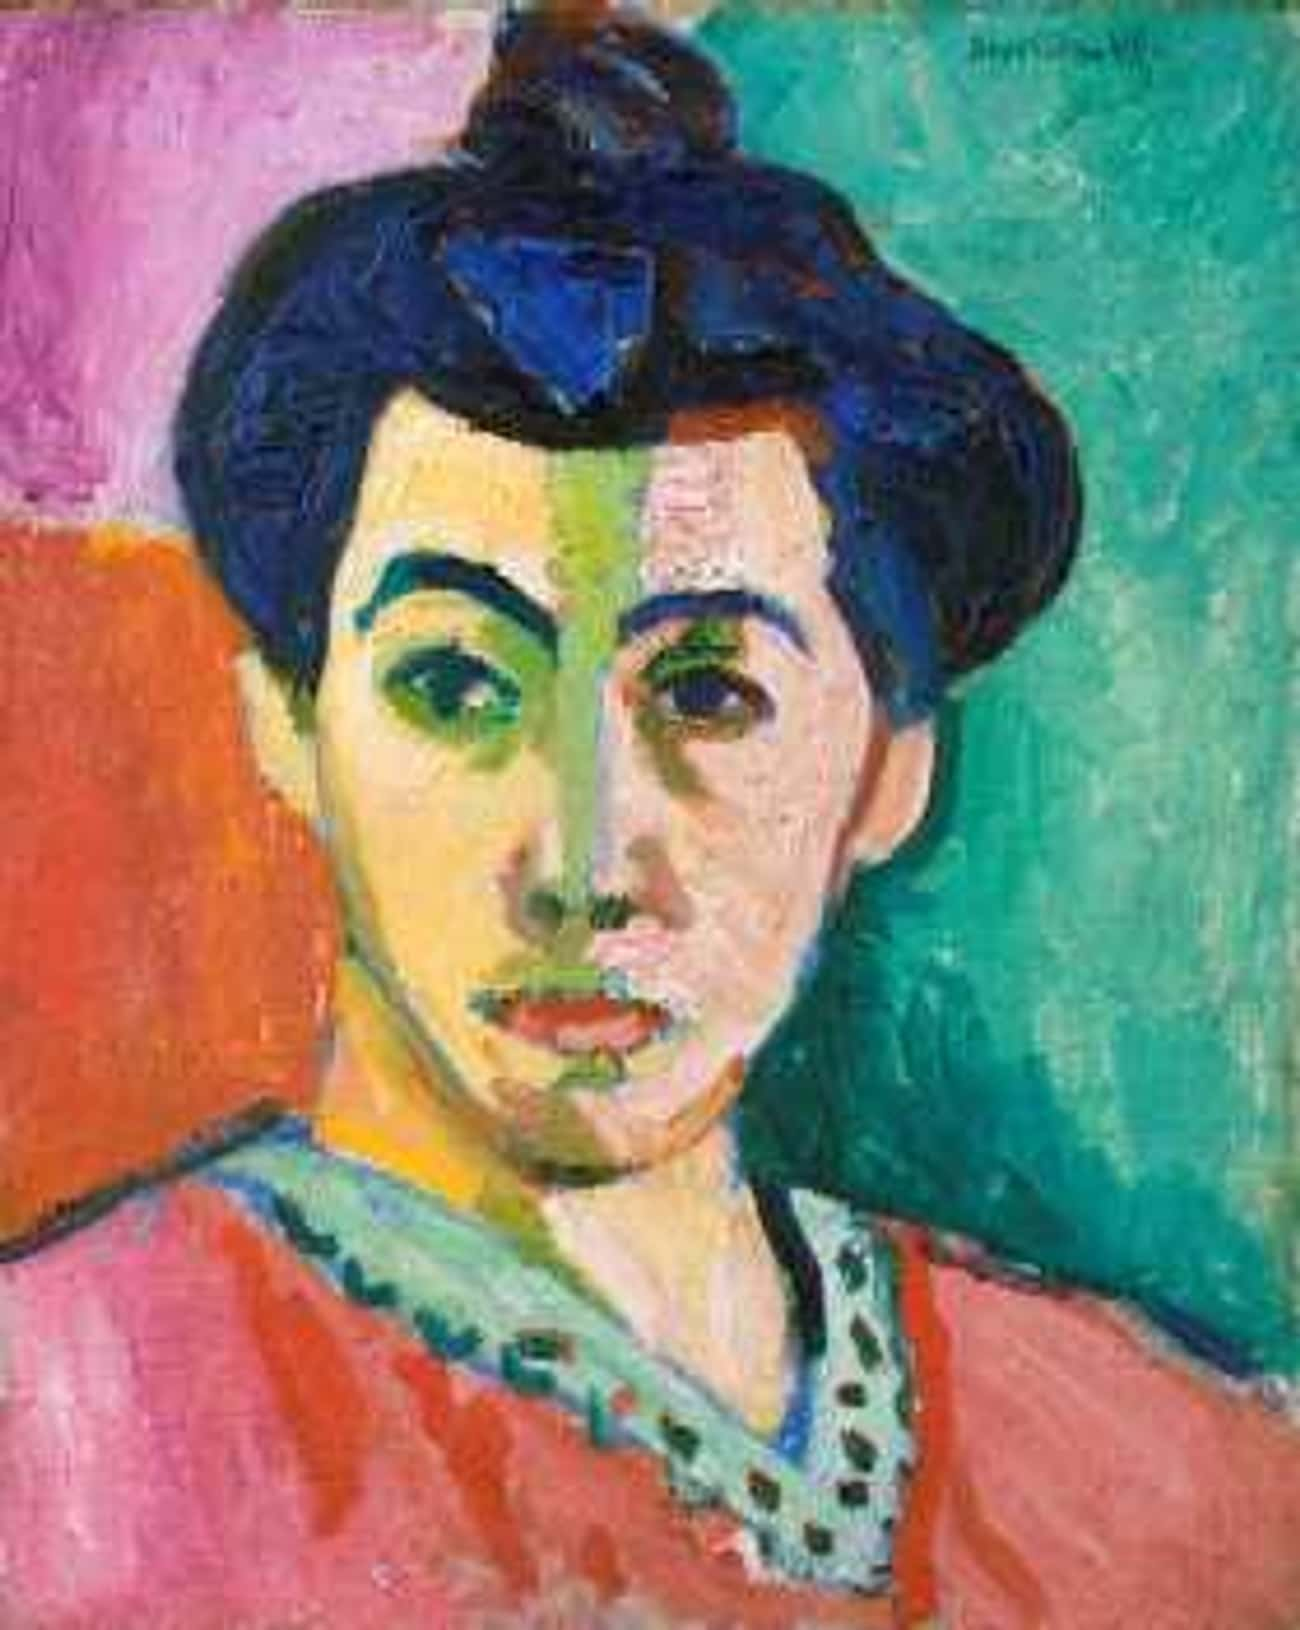 Green Stripe is listed (or ranked) 3 on the list Famous Fauvism Paintings